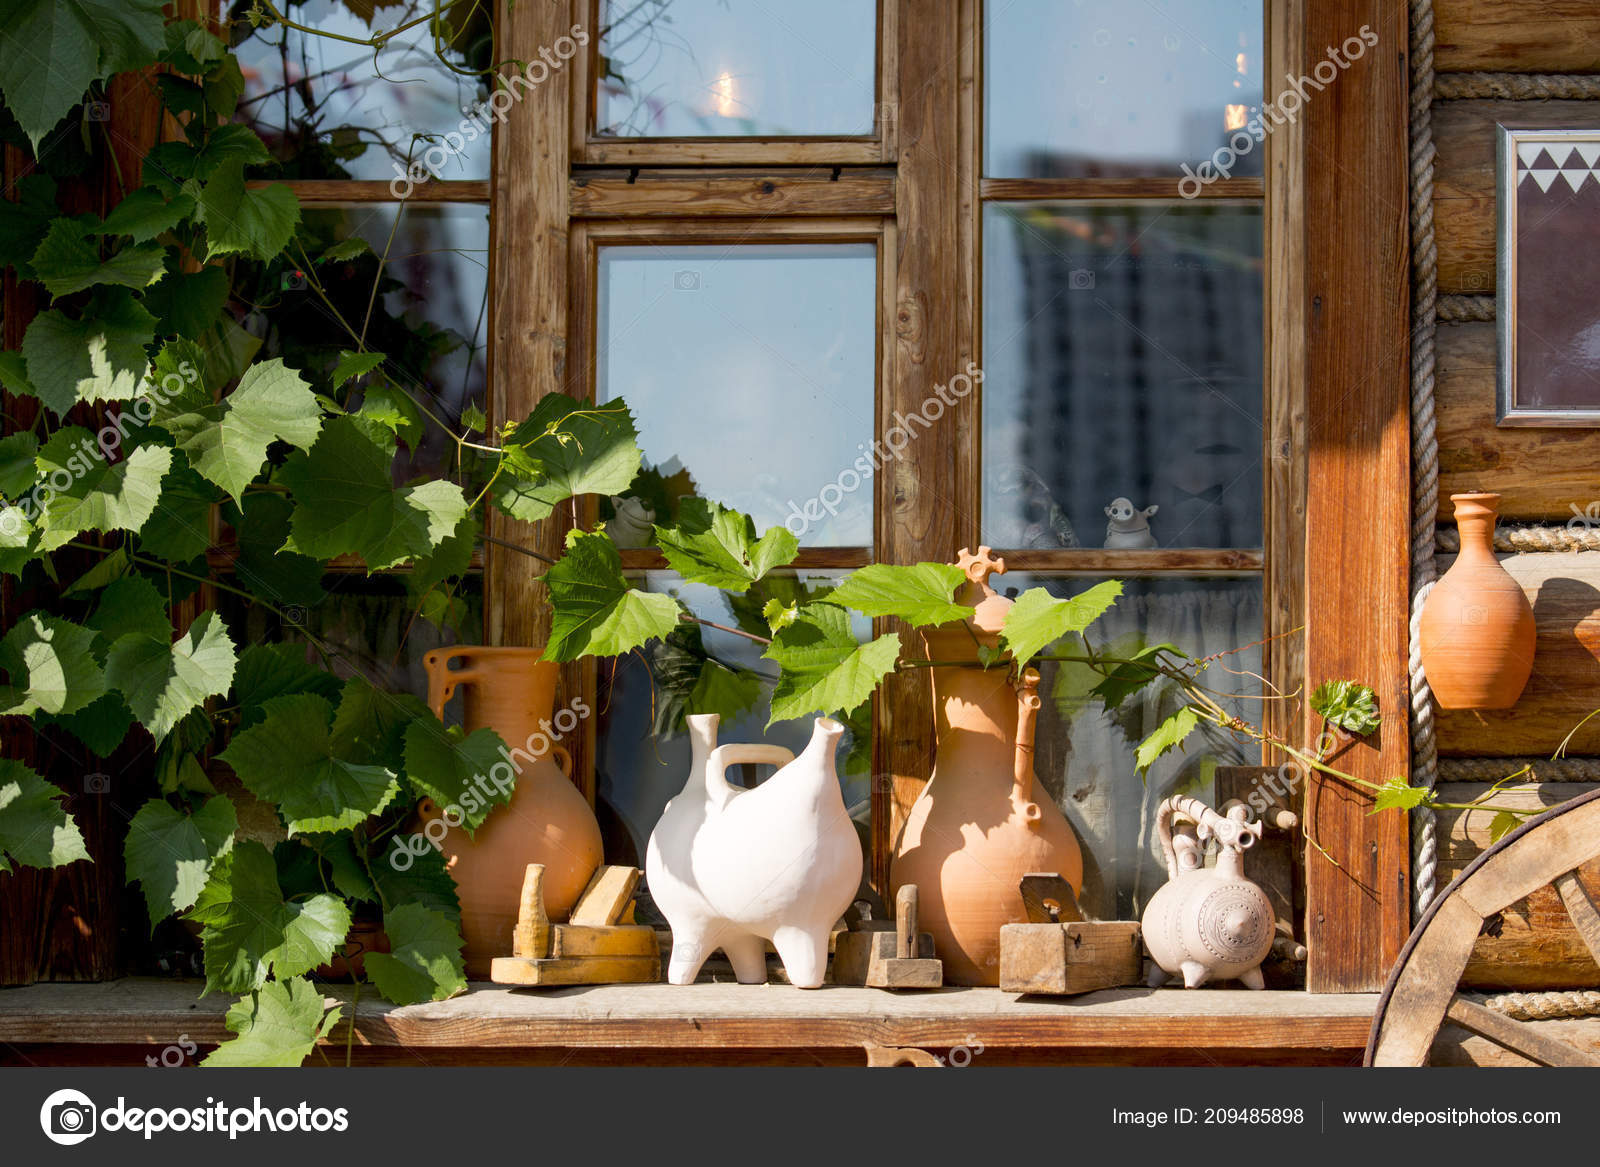 Clay brown pots in front of the window of a wooden house. Wooden house and  decor in front of the house. 12